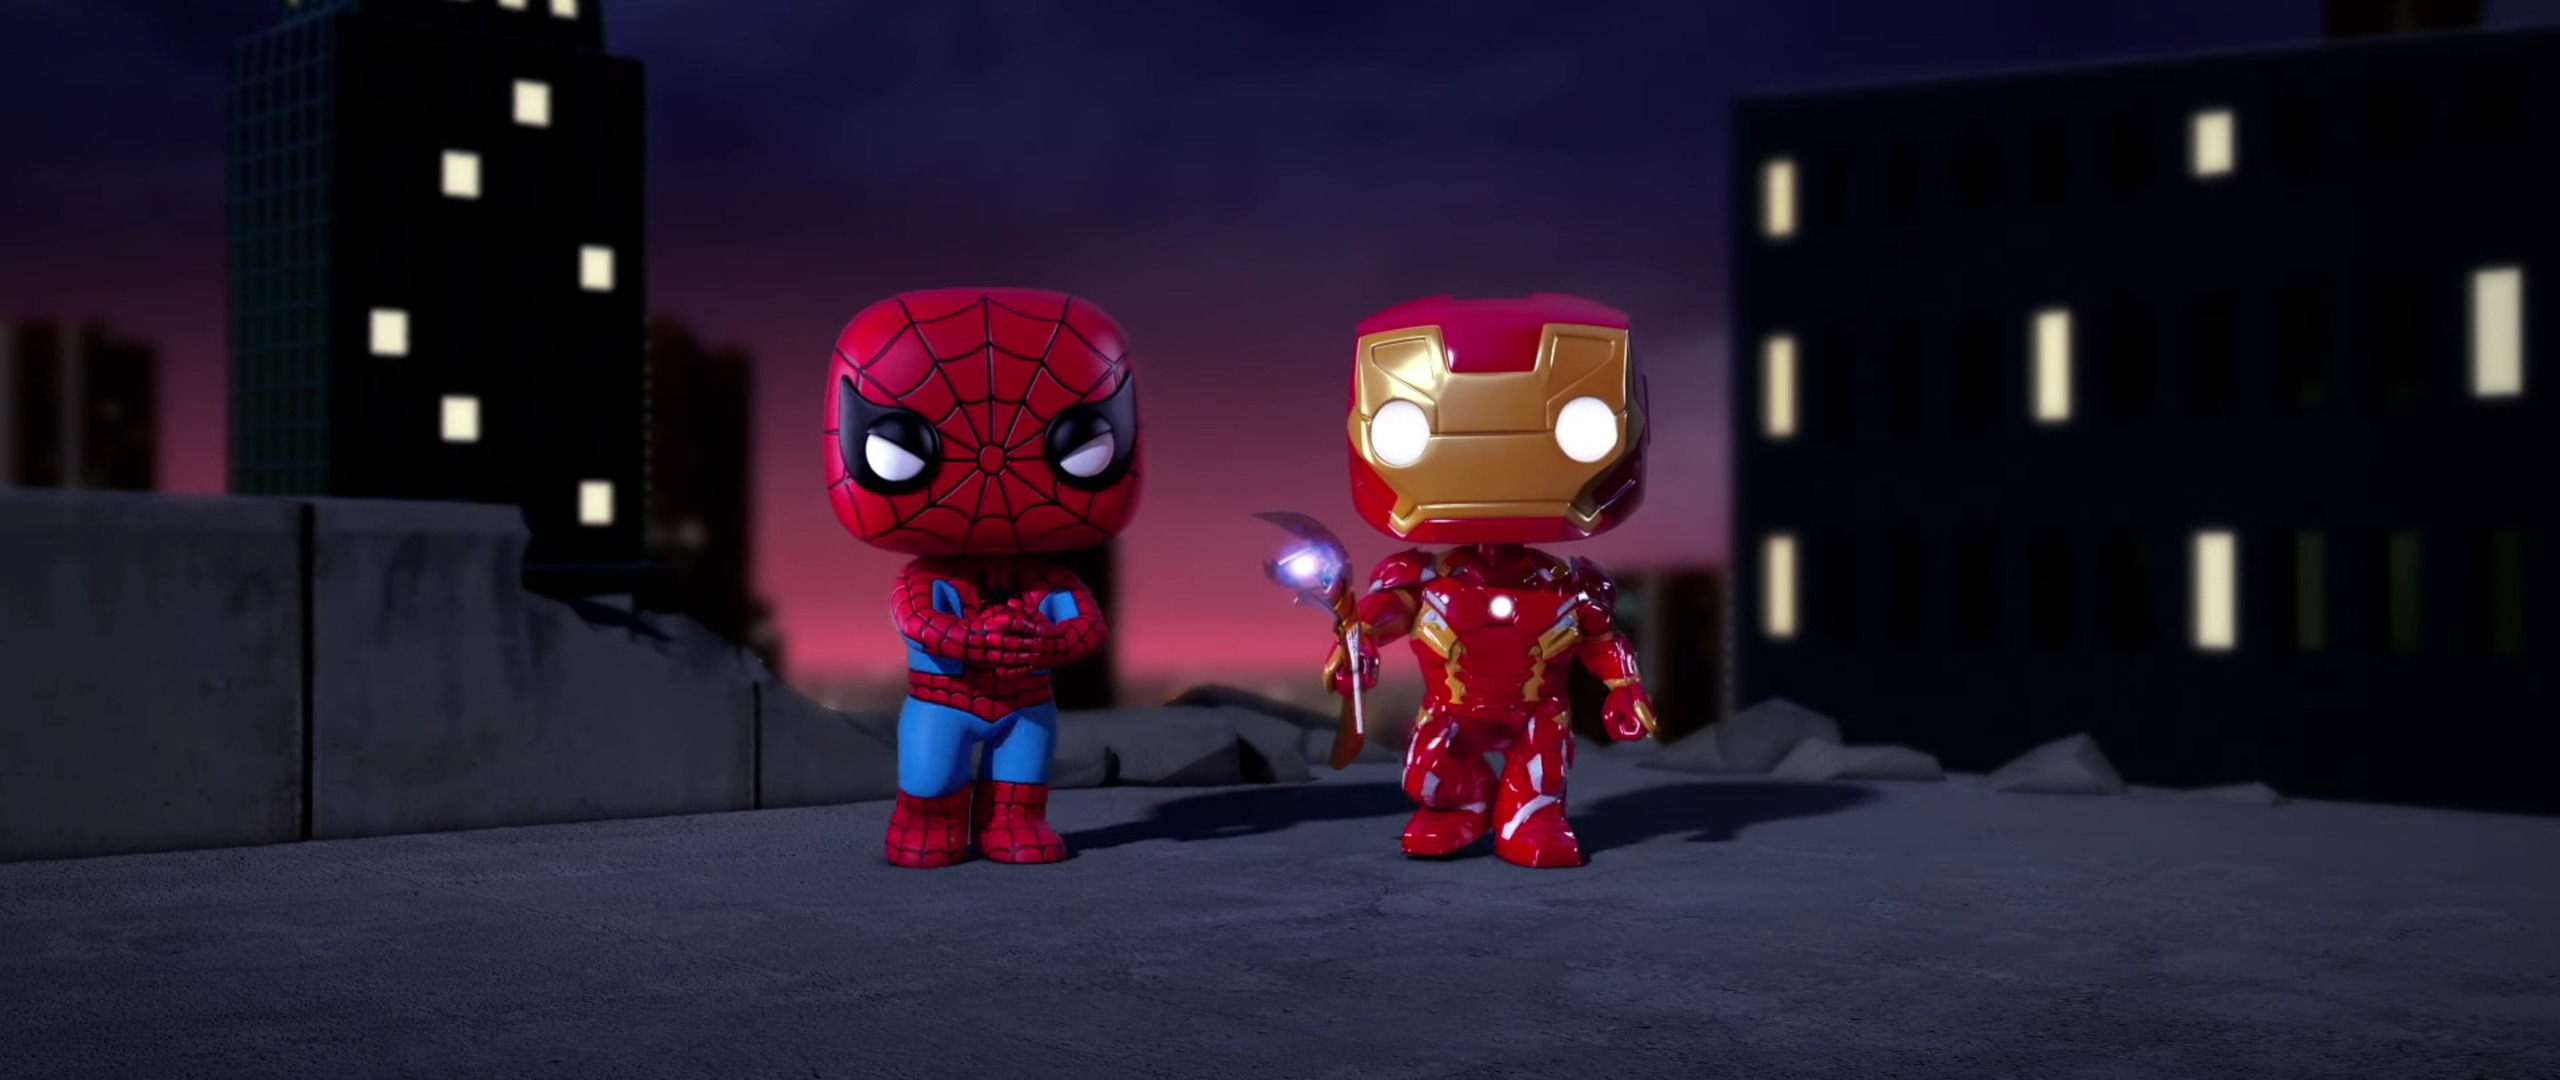 2560x1080 iron man and spiderman spellbound animated movie - Iron man wallpaper anime ...